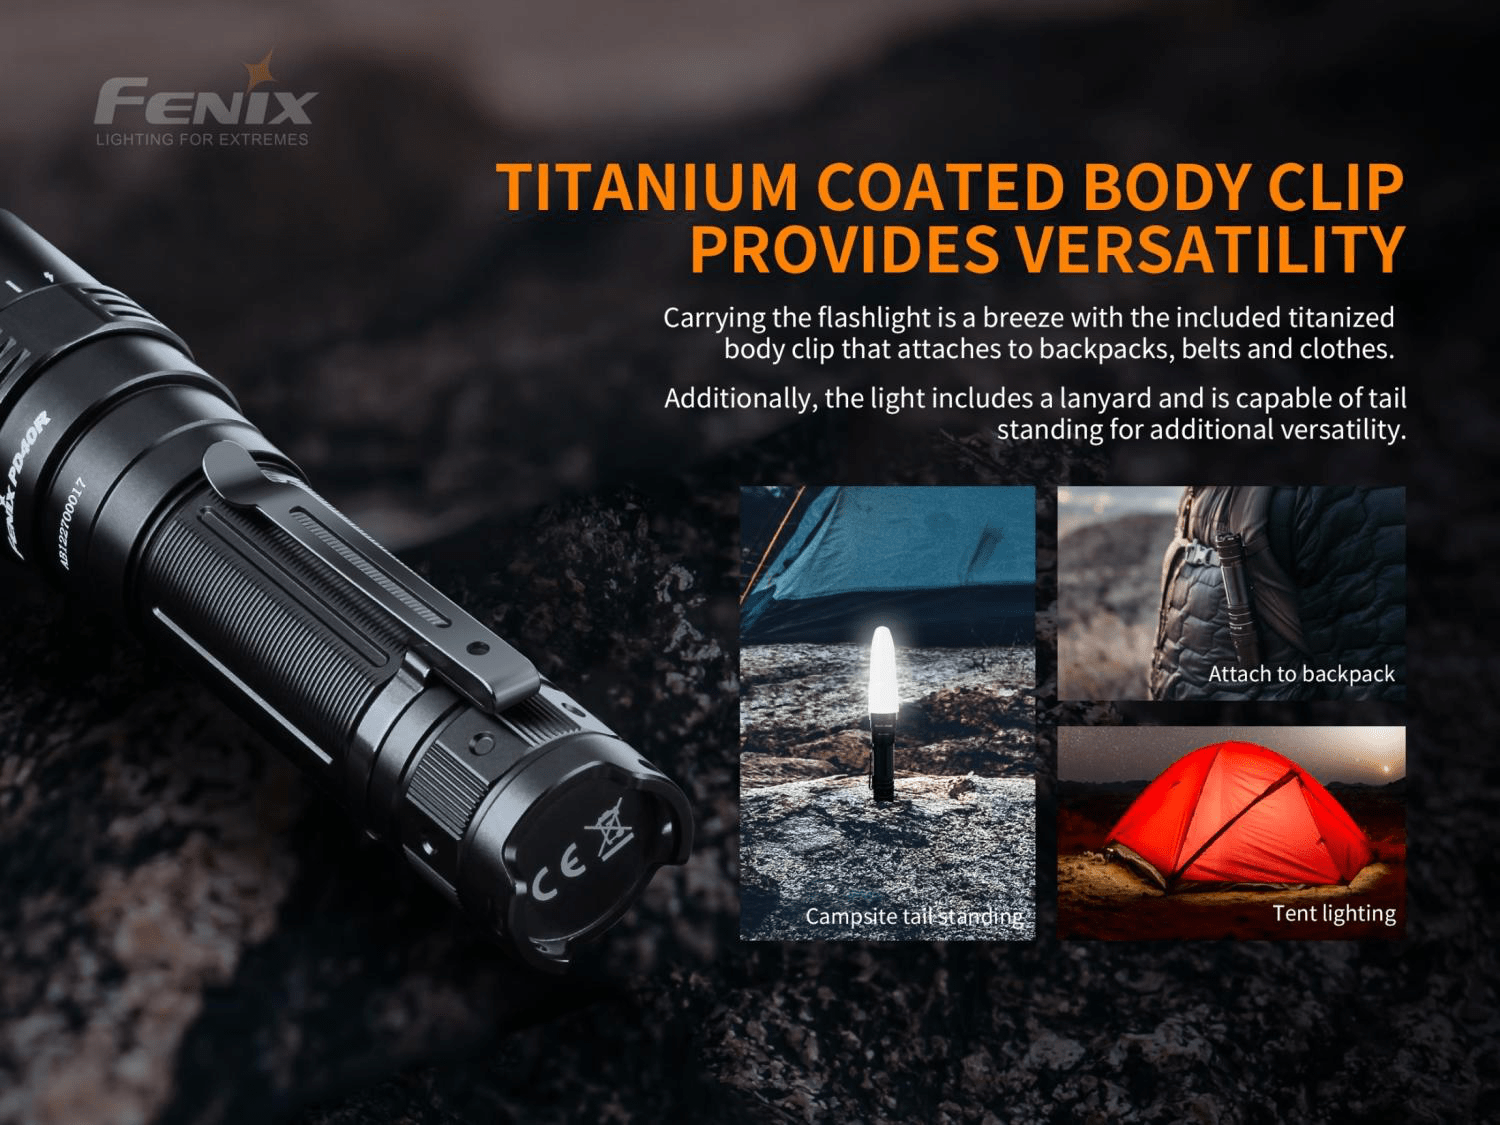 Fenix PD40R V2, Fenix PD40R LED Torch Light, Buy Best Rechargeable Outdoor LED Torch in India, 3000 Lumens Rechargeable Flashlight